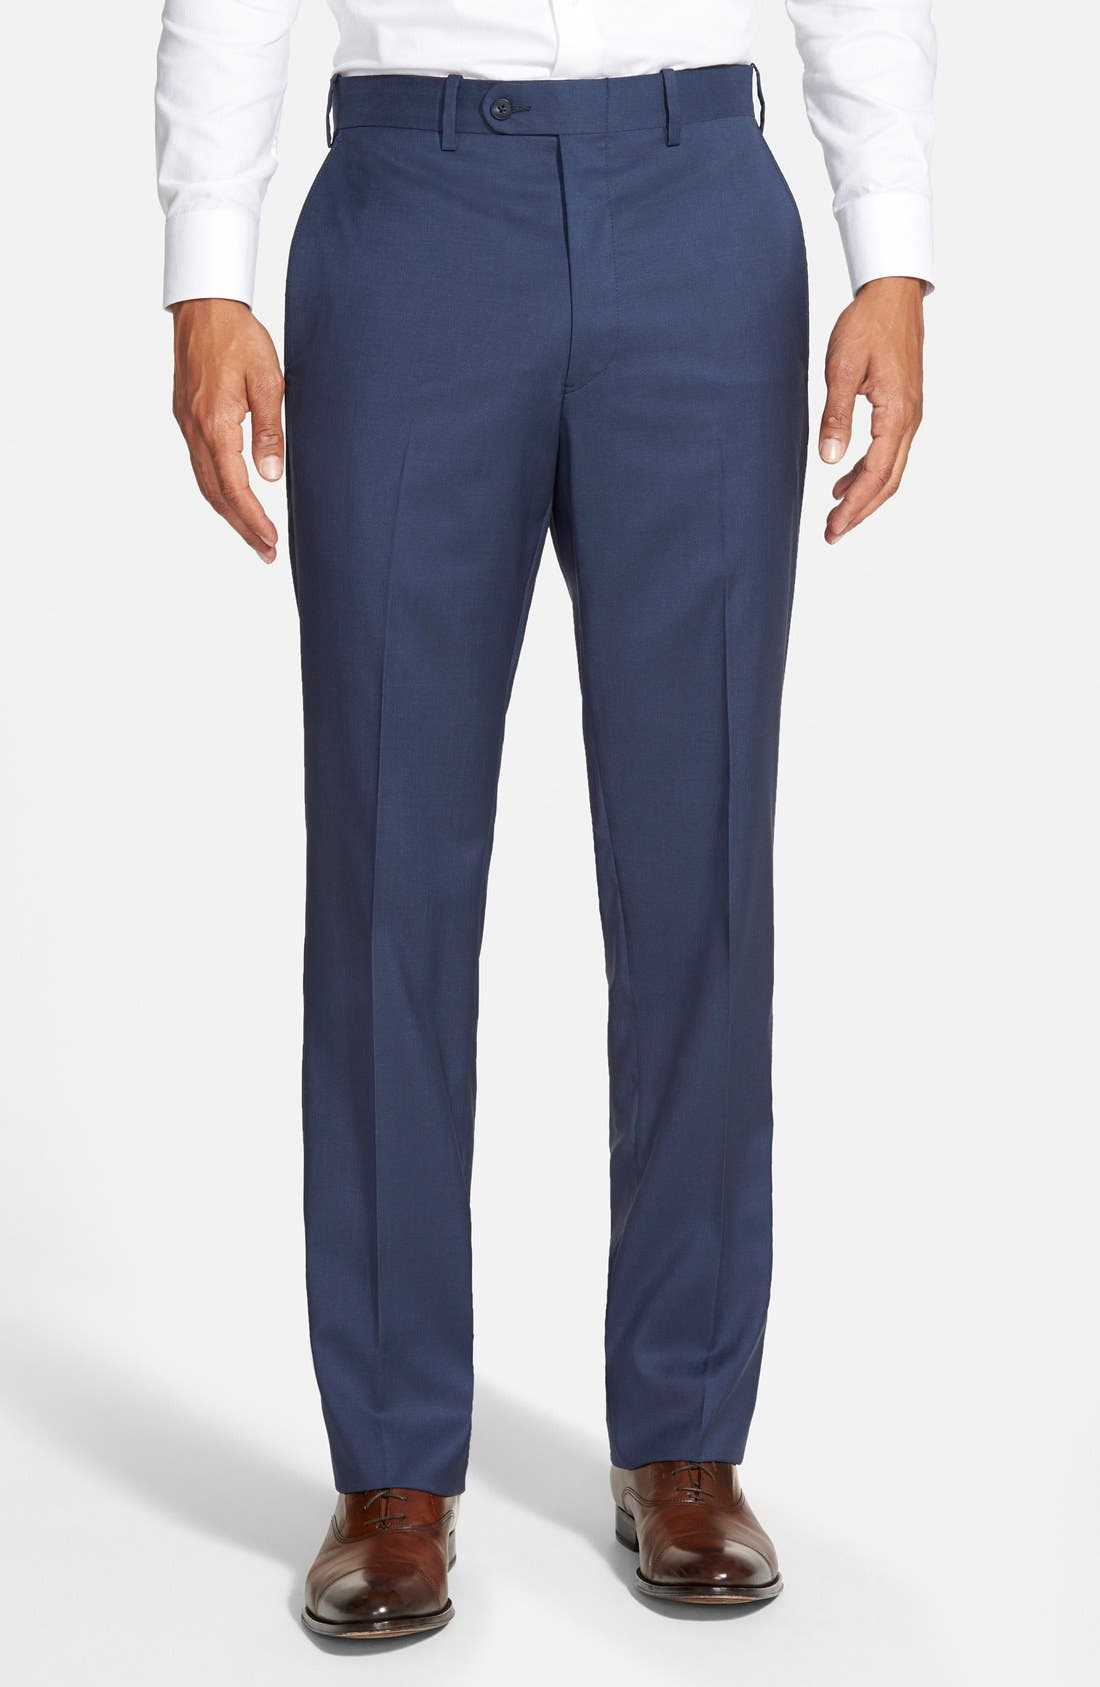 'Torino' Flat Front Wool Trousers,                         Main,                         color, French Blue